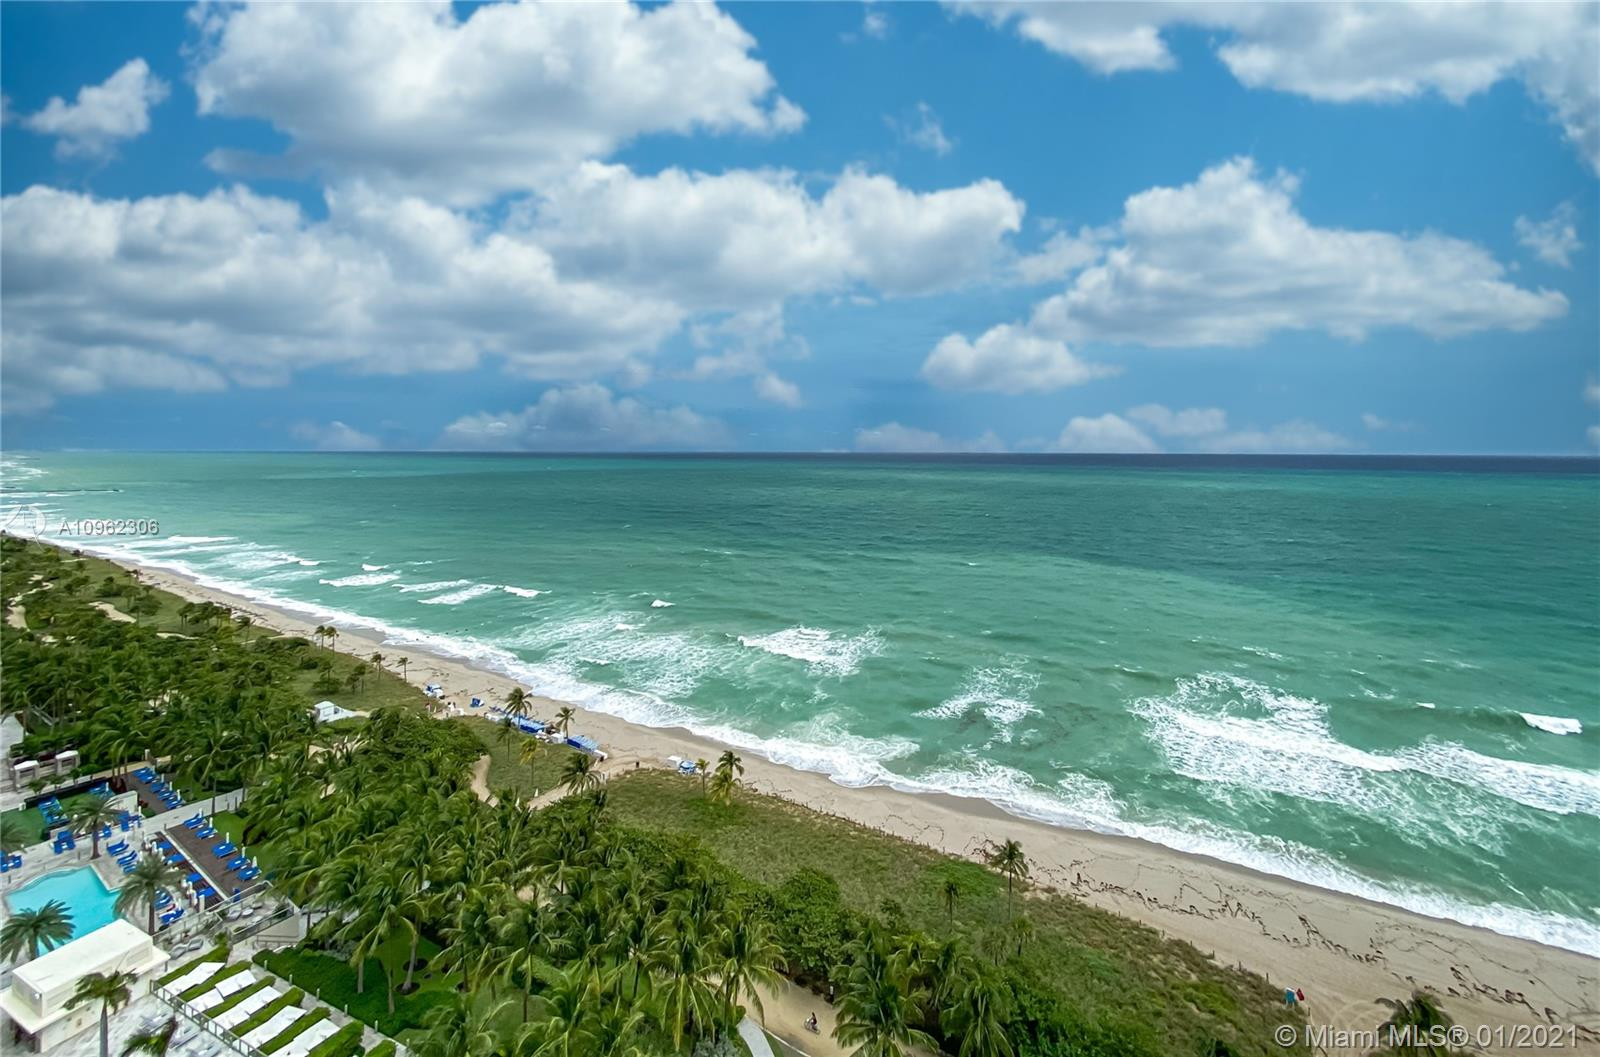 Wake up and see the ocean from this gorgeous luxury apartment  with private elevator access in prestigious Bal Harbour. The entry leads you into an open living space and immediately treats you and your guests to a breathtaking view. The floor plan is comfortable and spacious, with inviting floor-to-ceiling windows and sliding doors that lead to a wraparound terrace. The Majestic is sought after for its prime location and top-of-the-line amenities, including a spa, gym, gourmet restaurant, beach service, valet, security, and more. This elegant 3,400 sq. ft. unit is angled perfectly to maximize every view of the ocean's rolling waves. Please see Property Video and 3D Matterport Video.